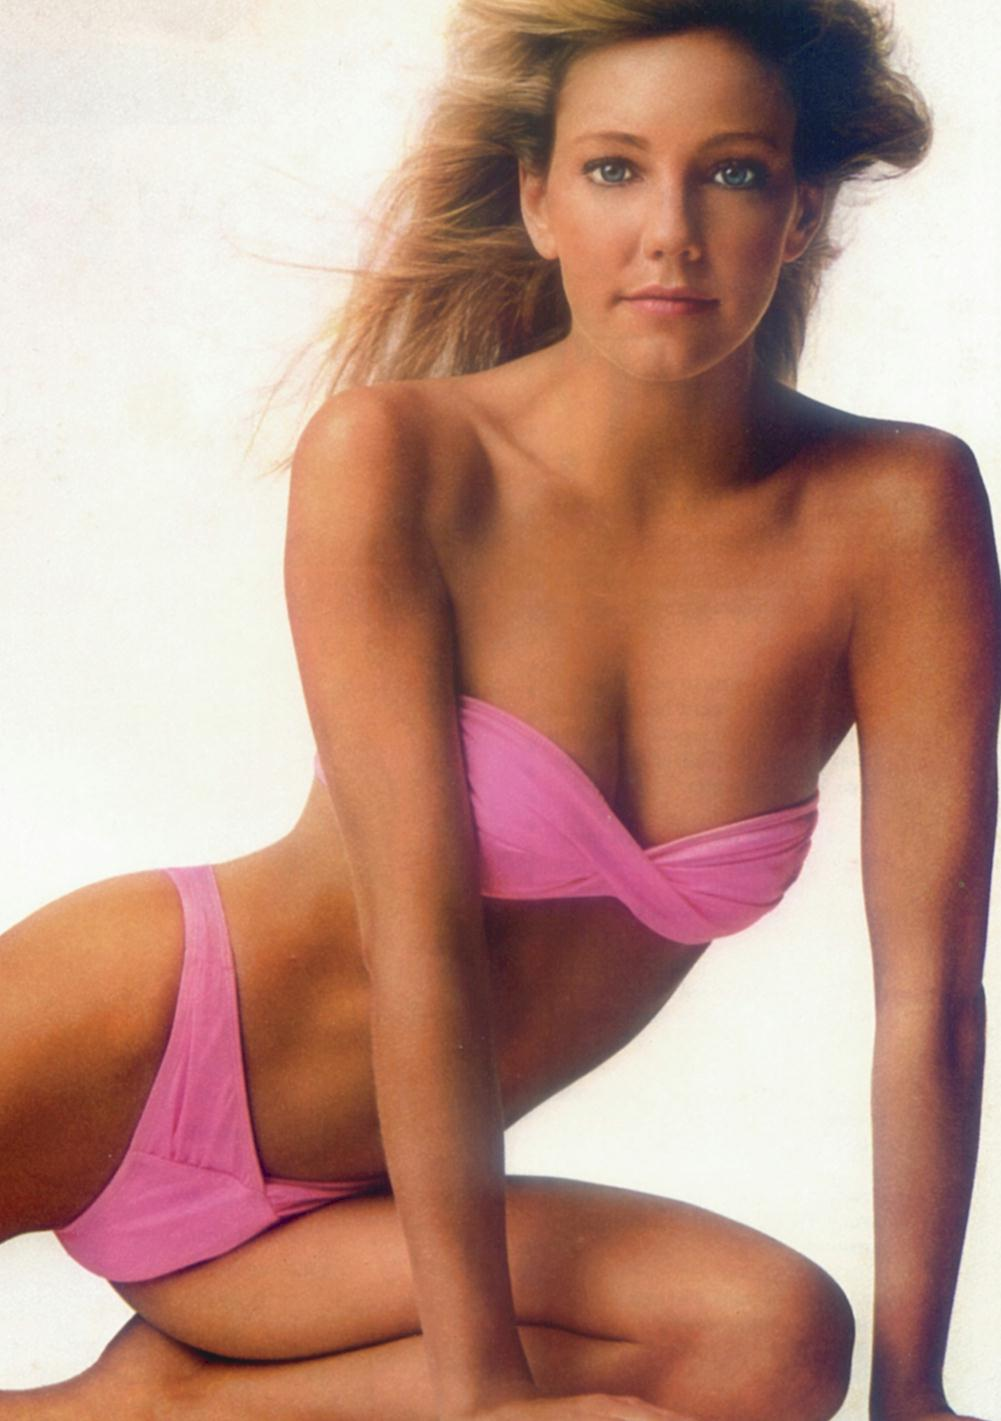 What Ever Happened To Heather Locklear Who Played Stacy